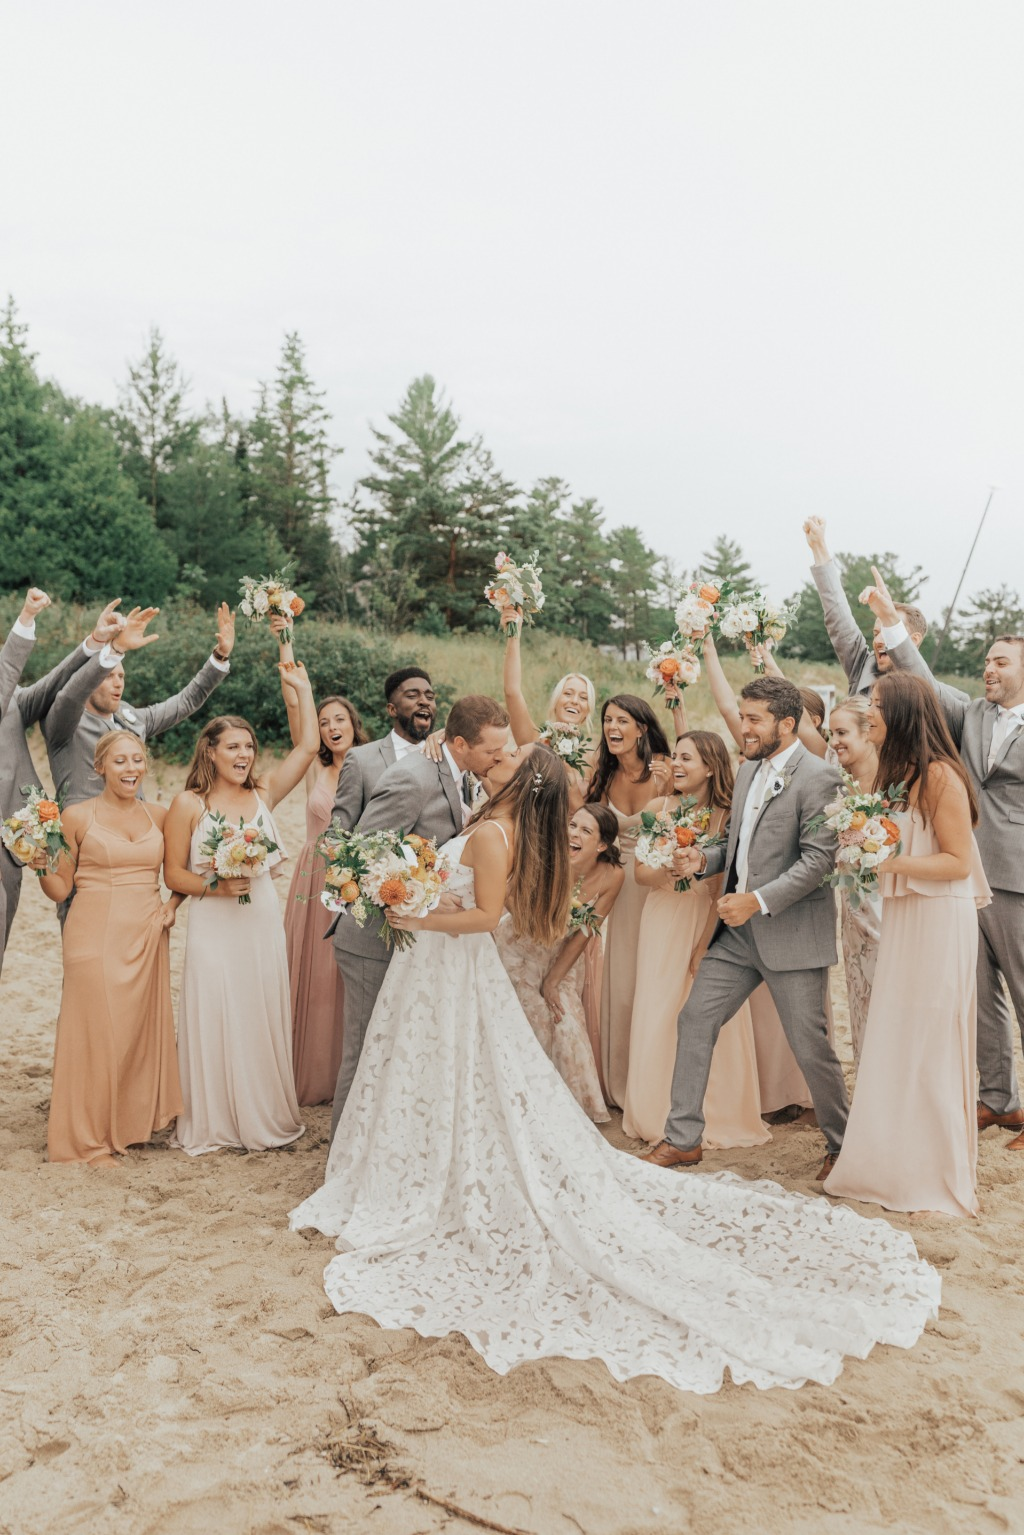 It POURED for 5 hours on their wedding day. Everyone stayed in the happiest of spirits. The rain slowed down during their ceremony